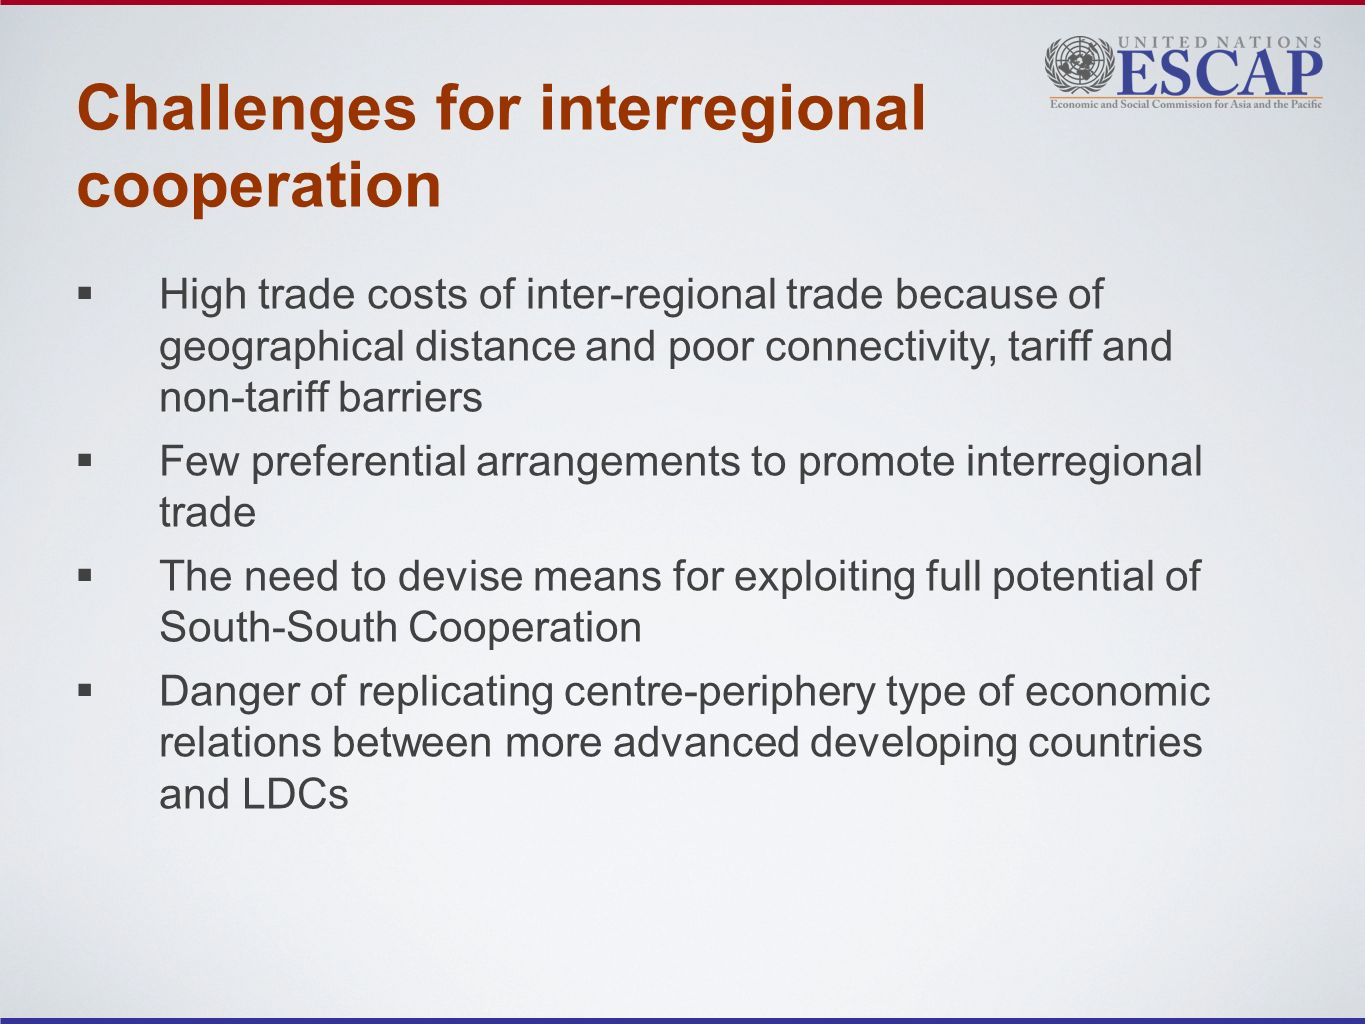 Challenges for interregional cooperation High trade costs of inter-regional trade because of geographical distance and poor connectivity, tariff and non-tariff barriers Few preferential arrangements to promote interregional trade The need to devise means for exploiting full potential of South-South Cooperation Danger of replicating centre-periphery type of economic relations between more advanced developing countries and LDCs